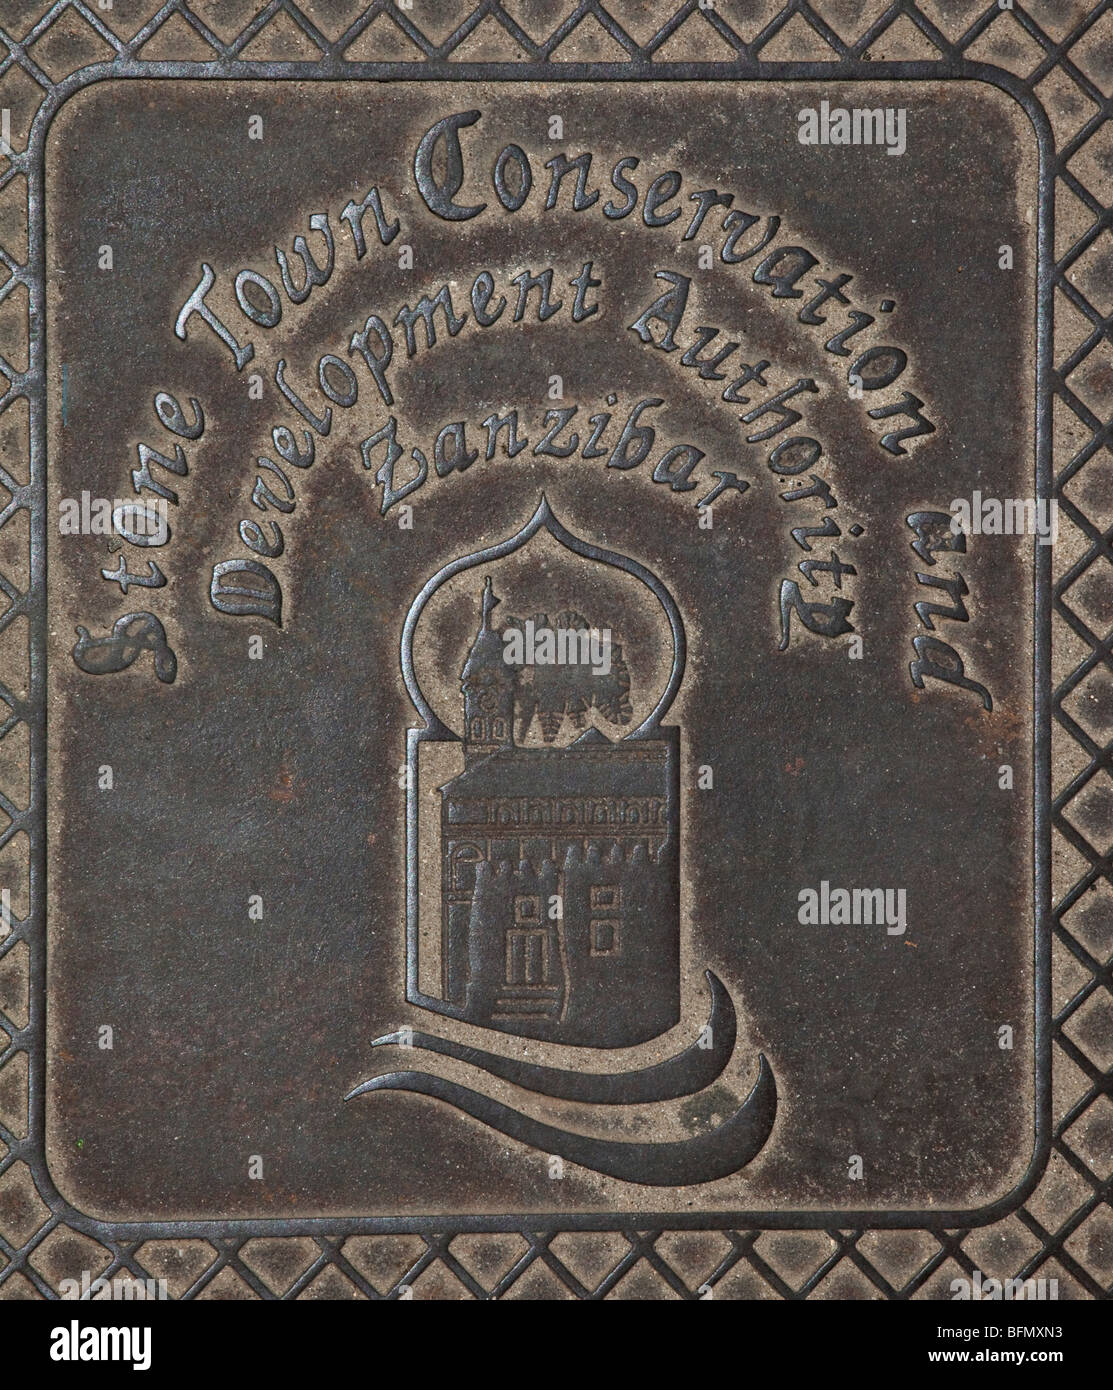 Tanzania, Zanzibar, Stone Town. A manhole cover in Stone Town highlighting the important contribution made by the - Stock Image